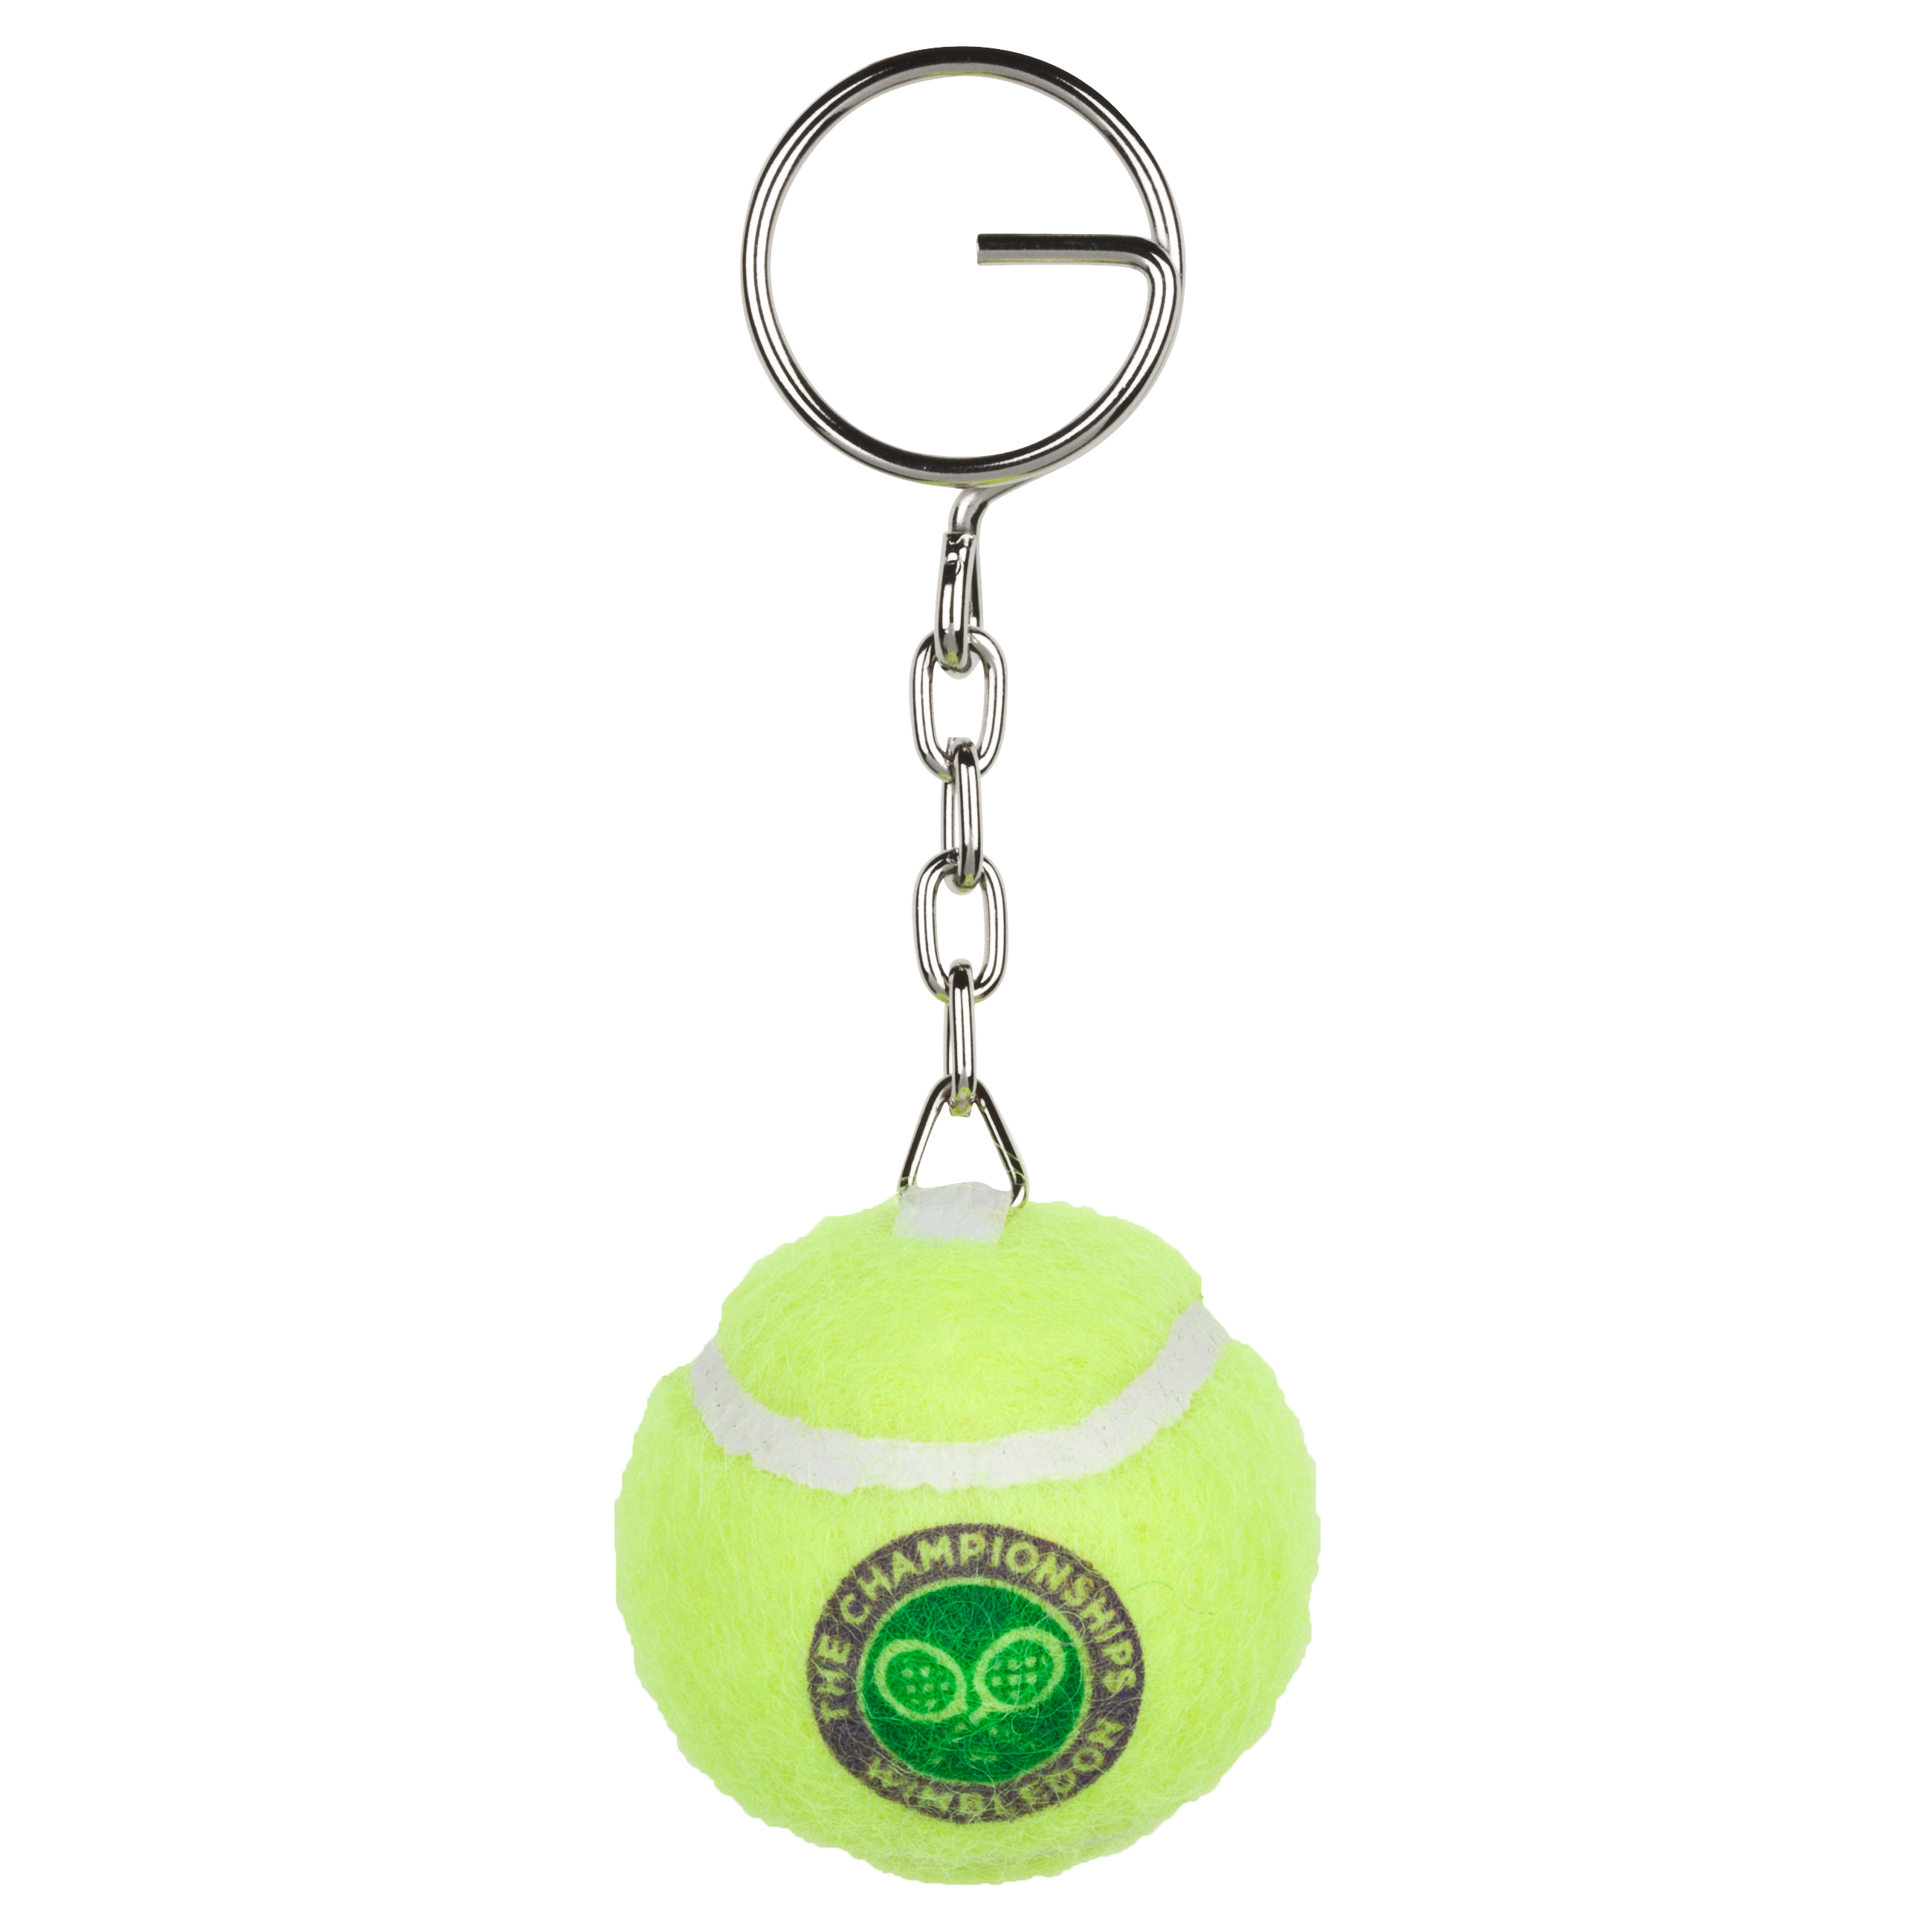 Wimbledon Mini Tennis Ball Keyring - Yellow